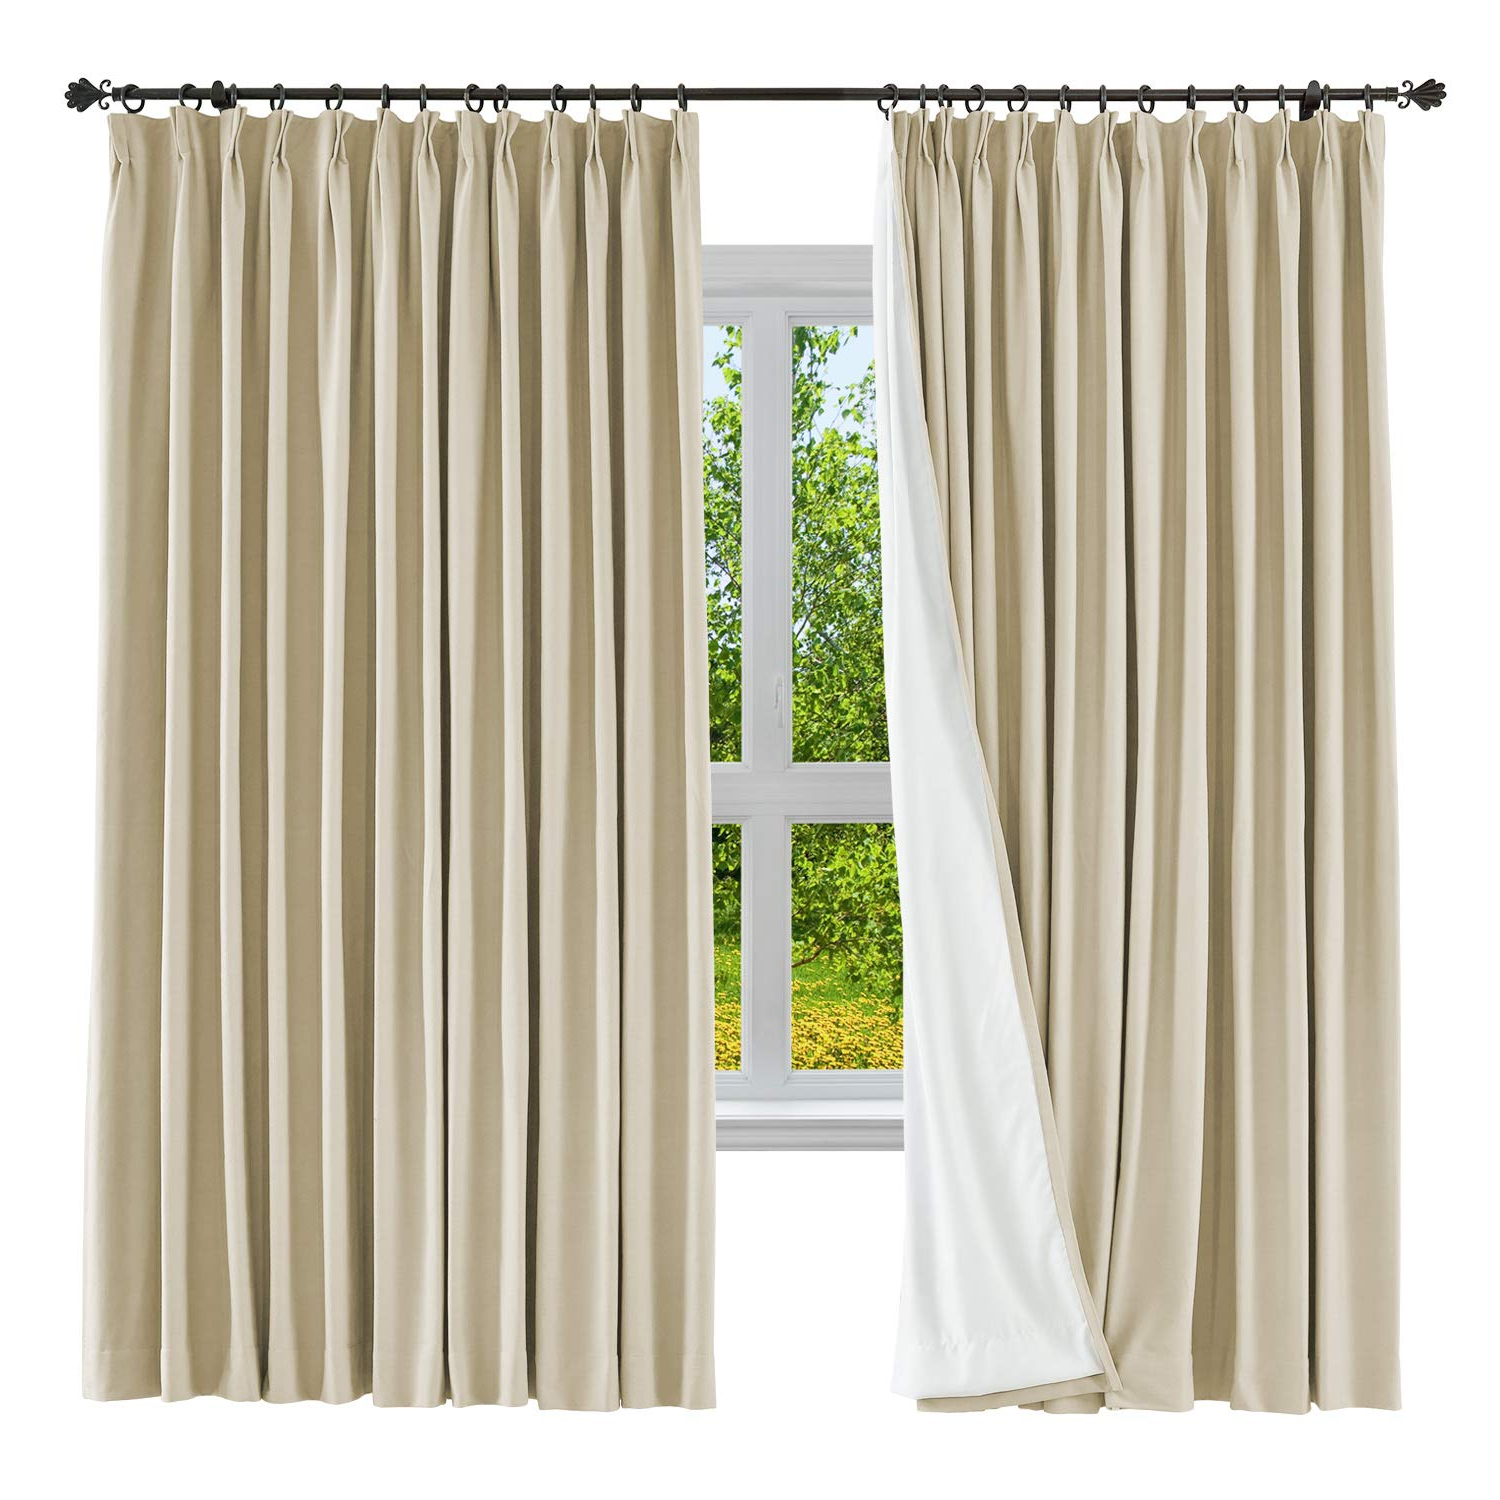 Latest Solid Country Cotton Linen Weave Curtain Panels Throughout Cololeaf Blackout Curtain Panel Cotton Linen Drape Window (View 8 of 20)